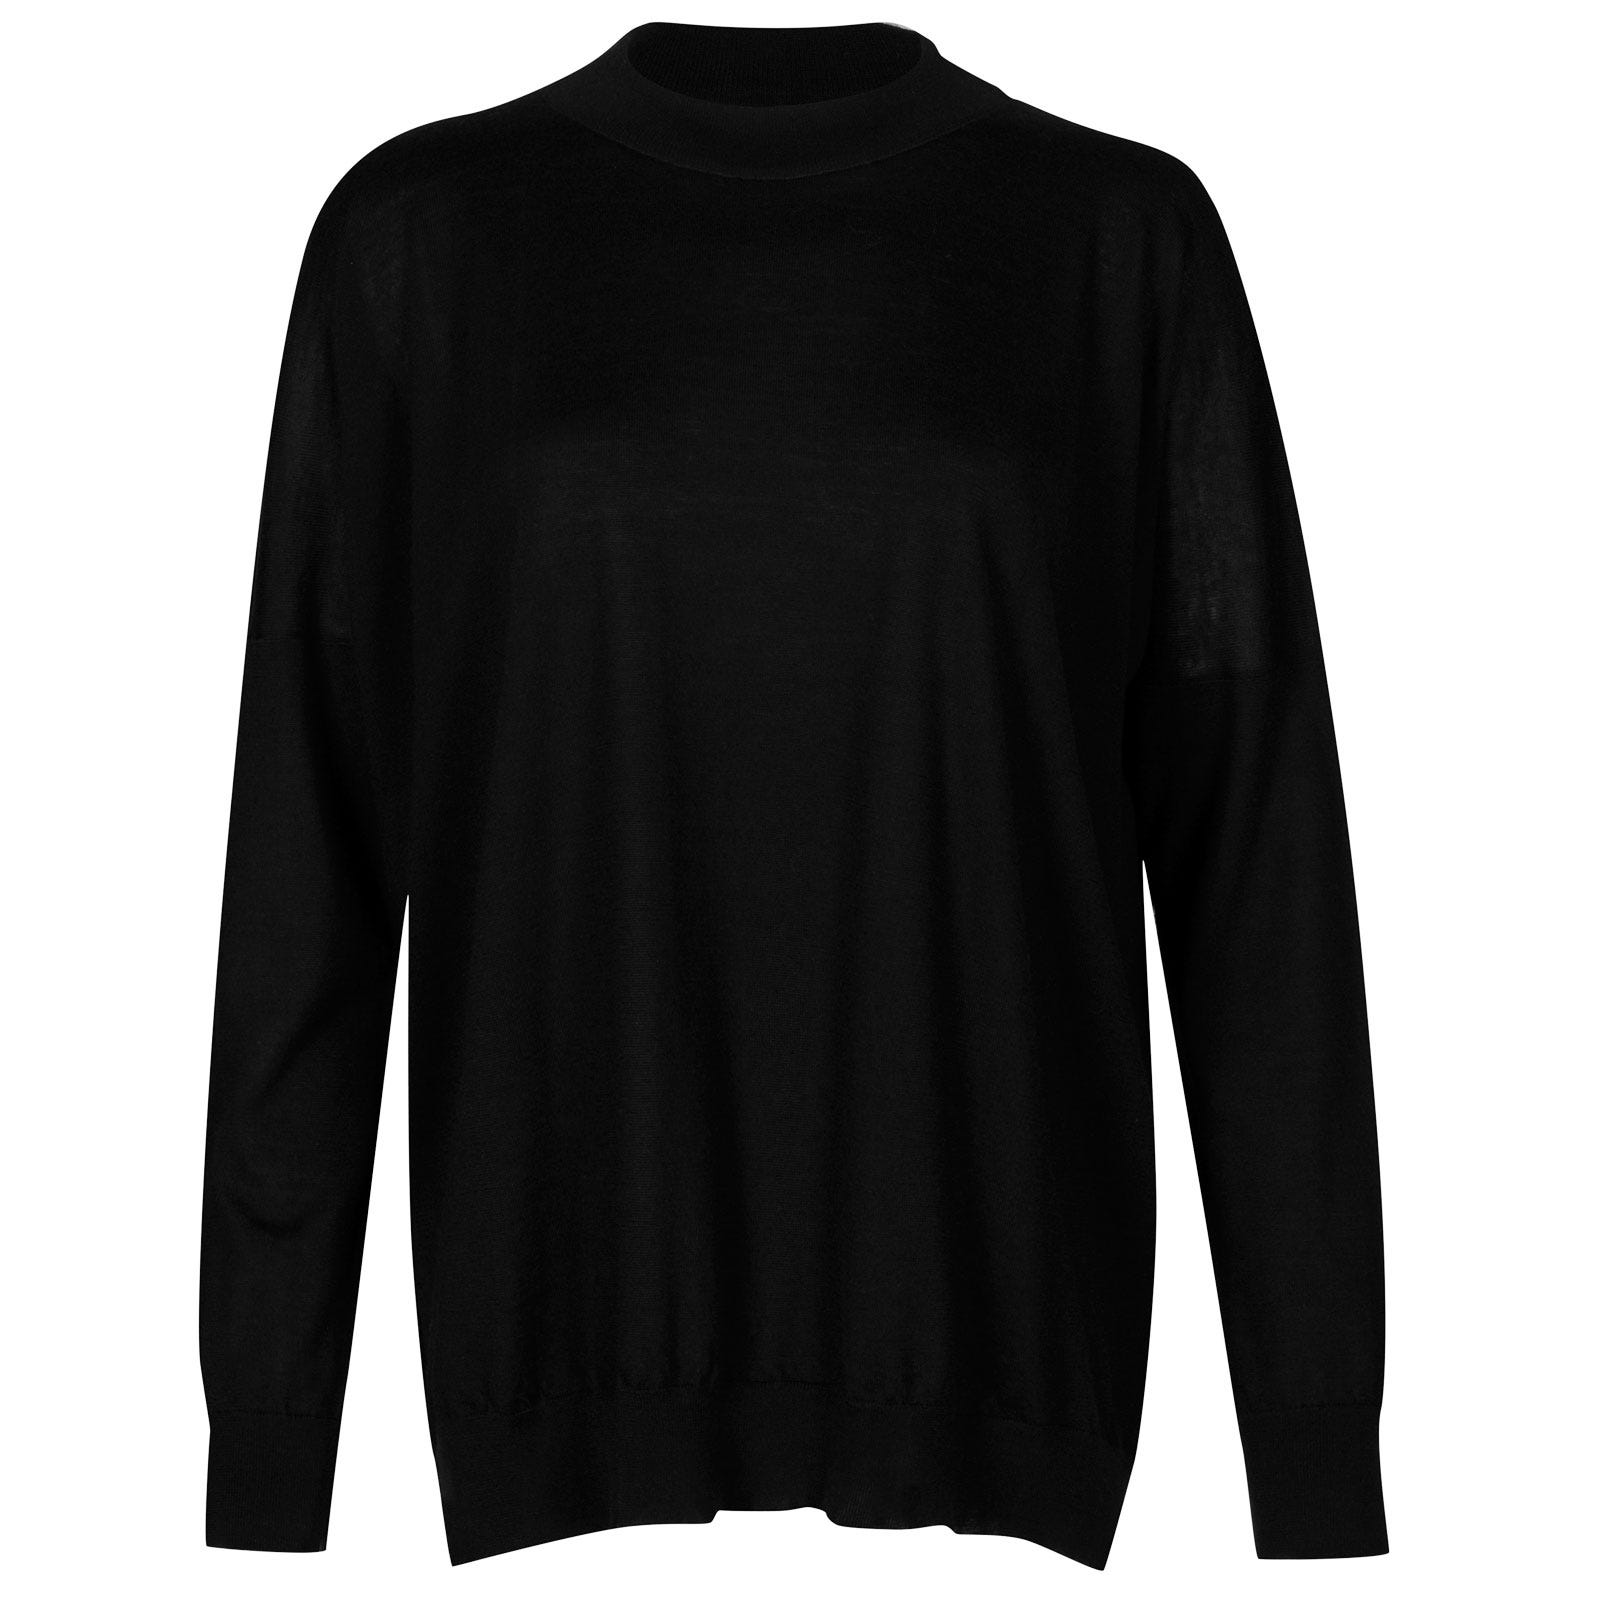 John Smedley osha Merino Wool and Cashmere Sweater in Black-M